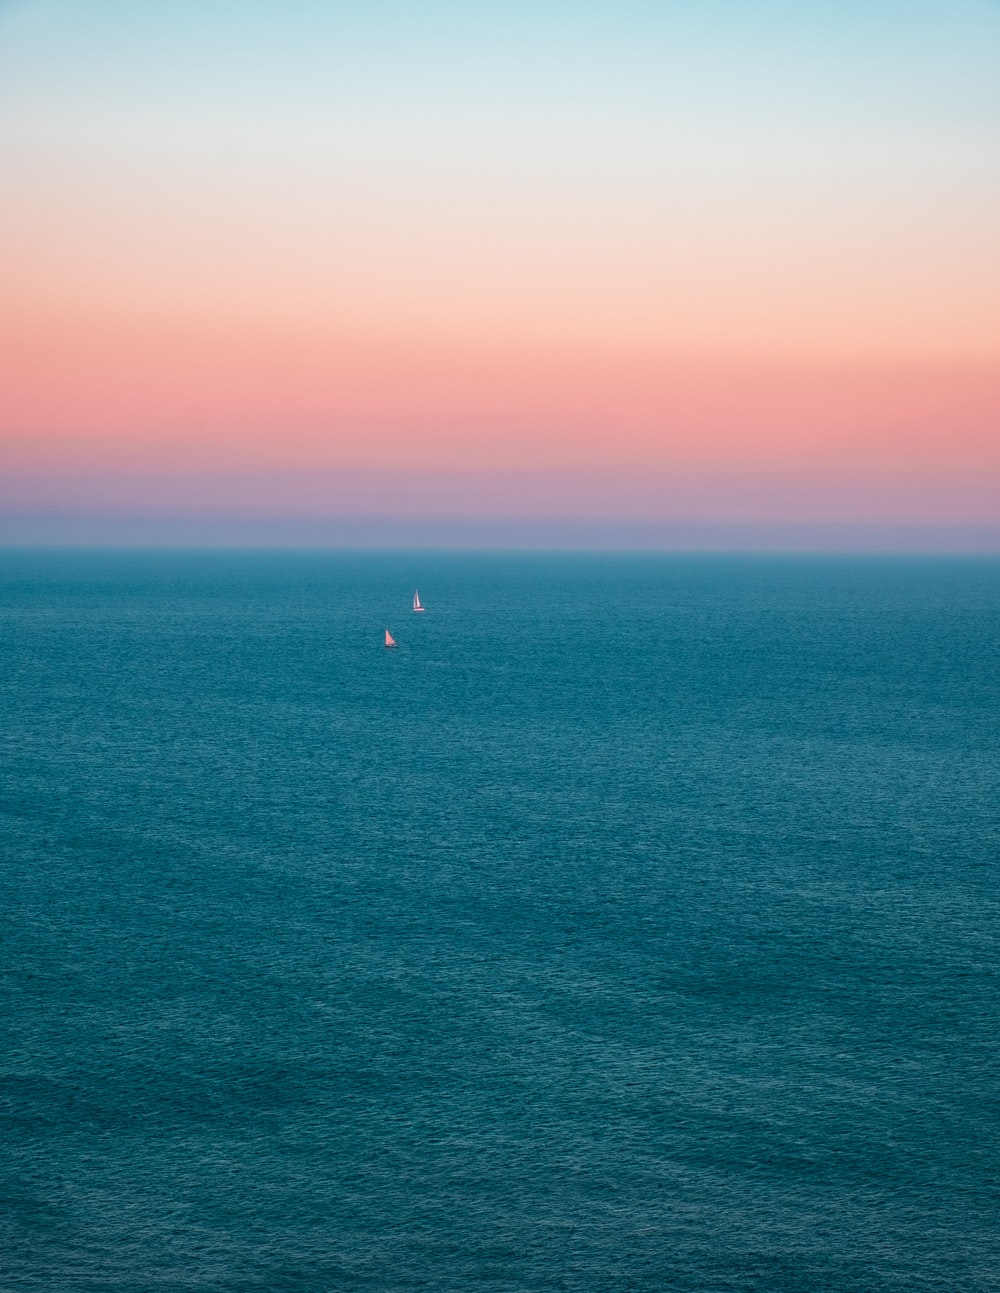 person in the middle of ocean during sunset